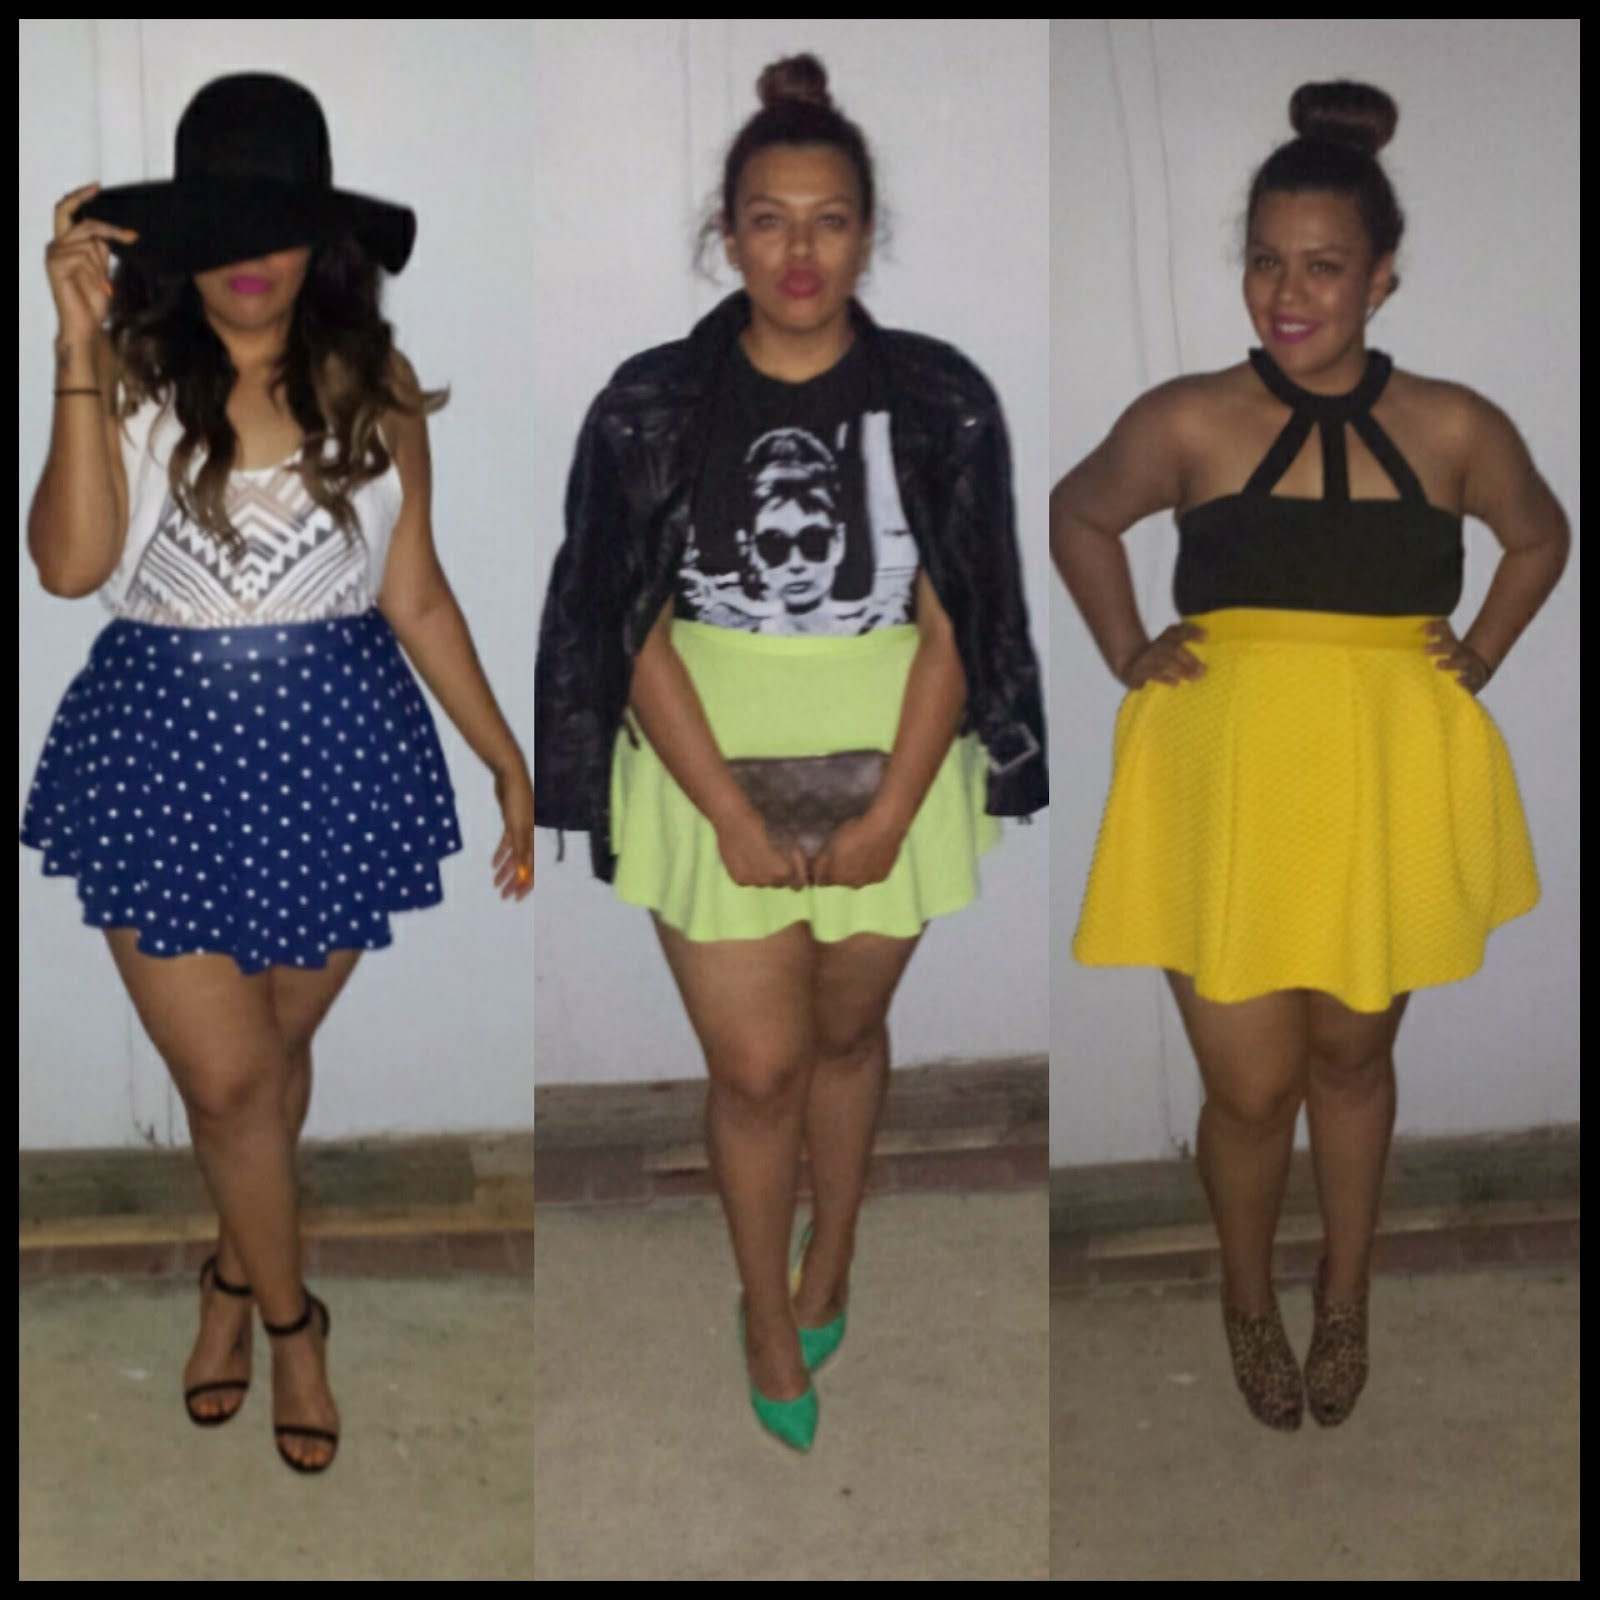 Watch - How to skater wear skirt for work video